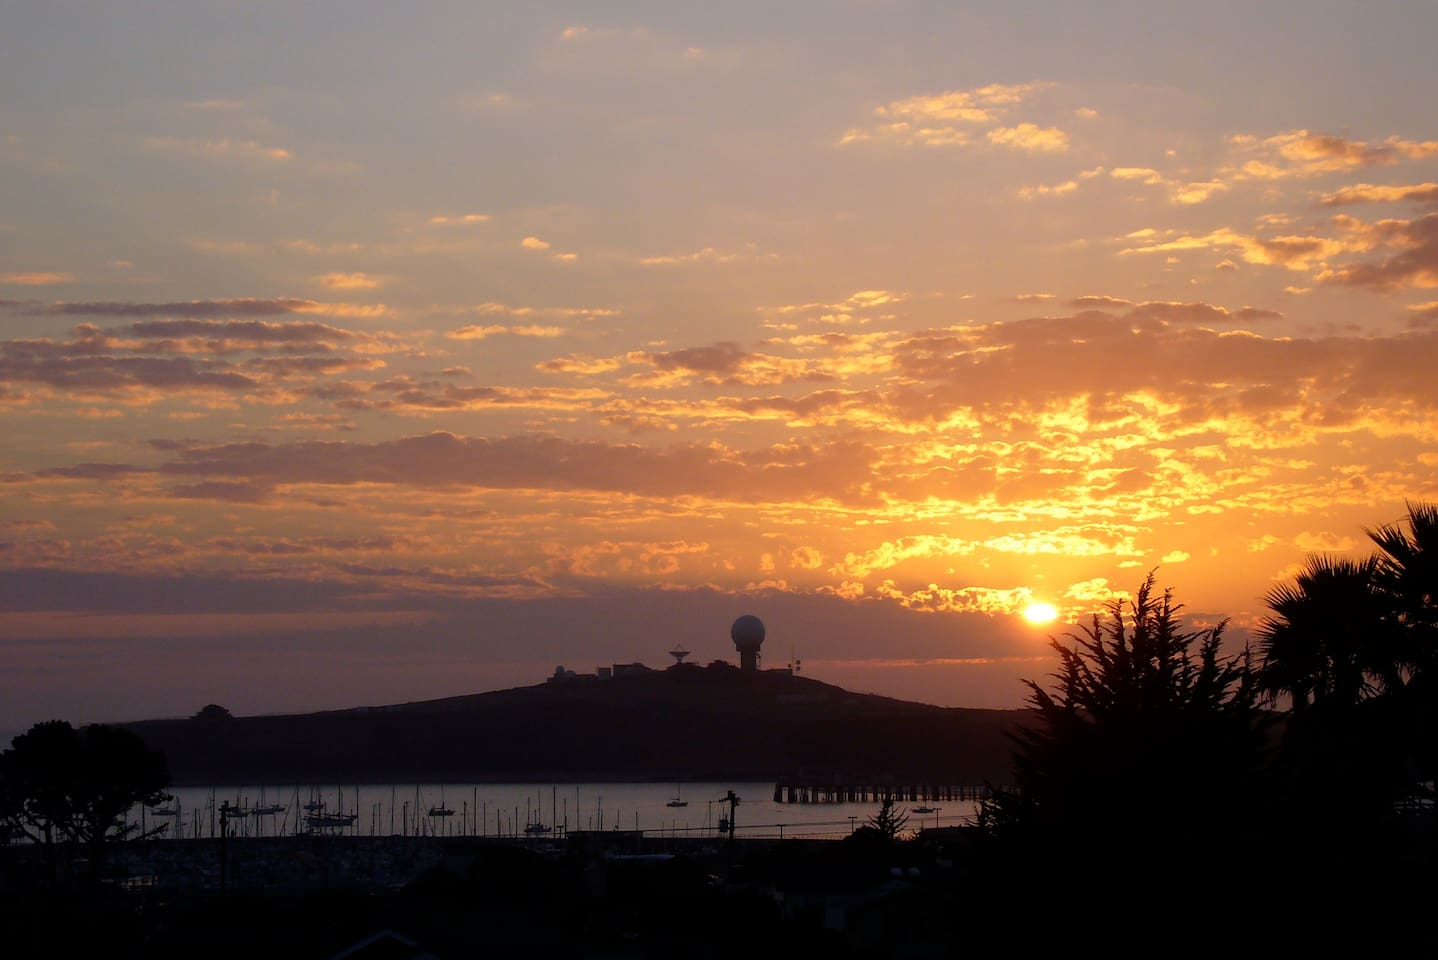 sunset at Princeton harbor- taken from our home upstairs